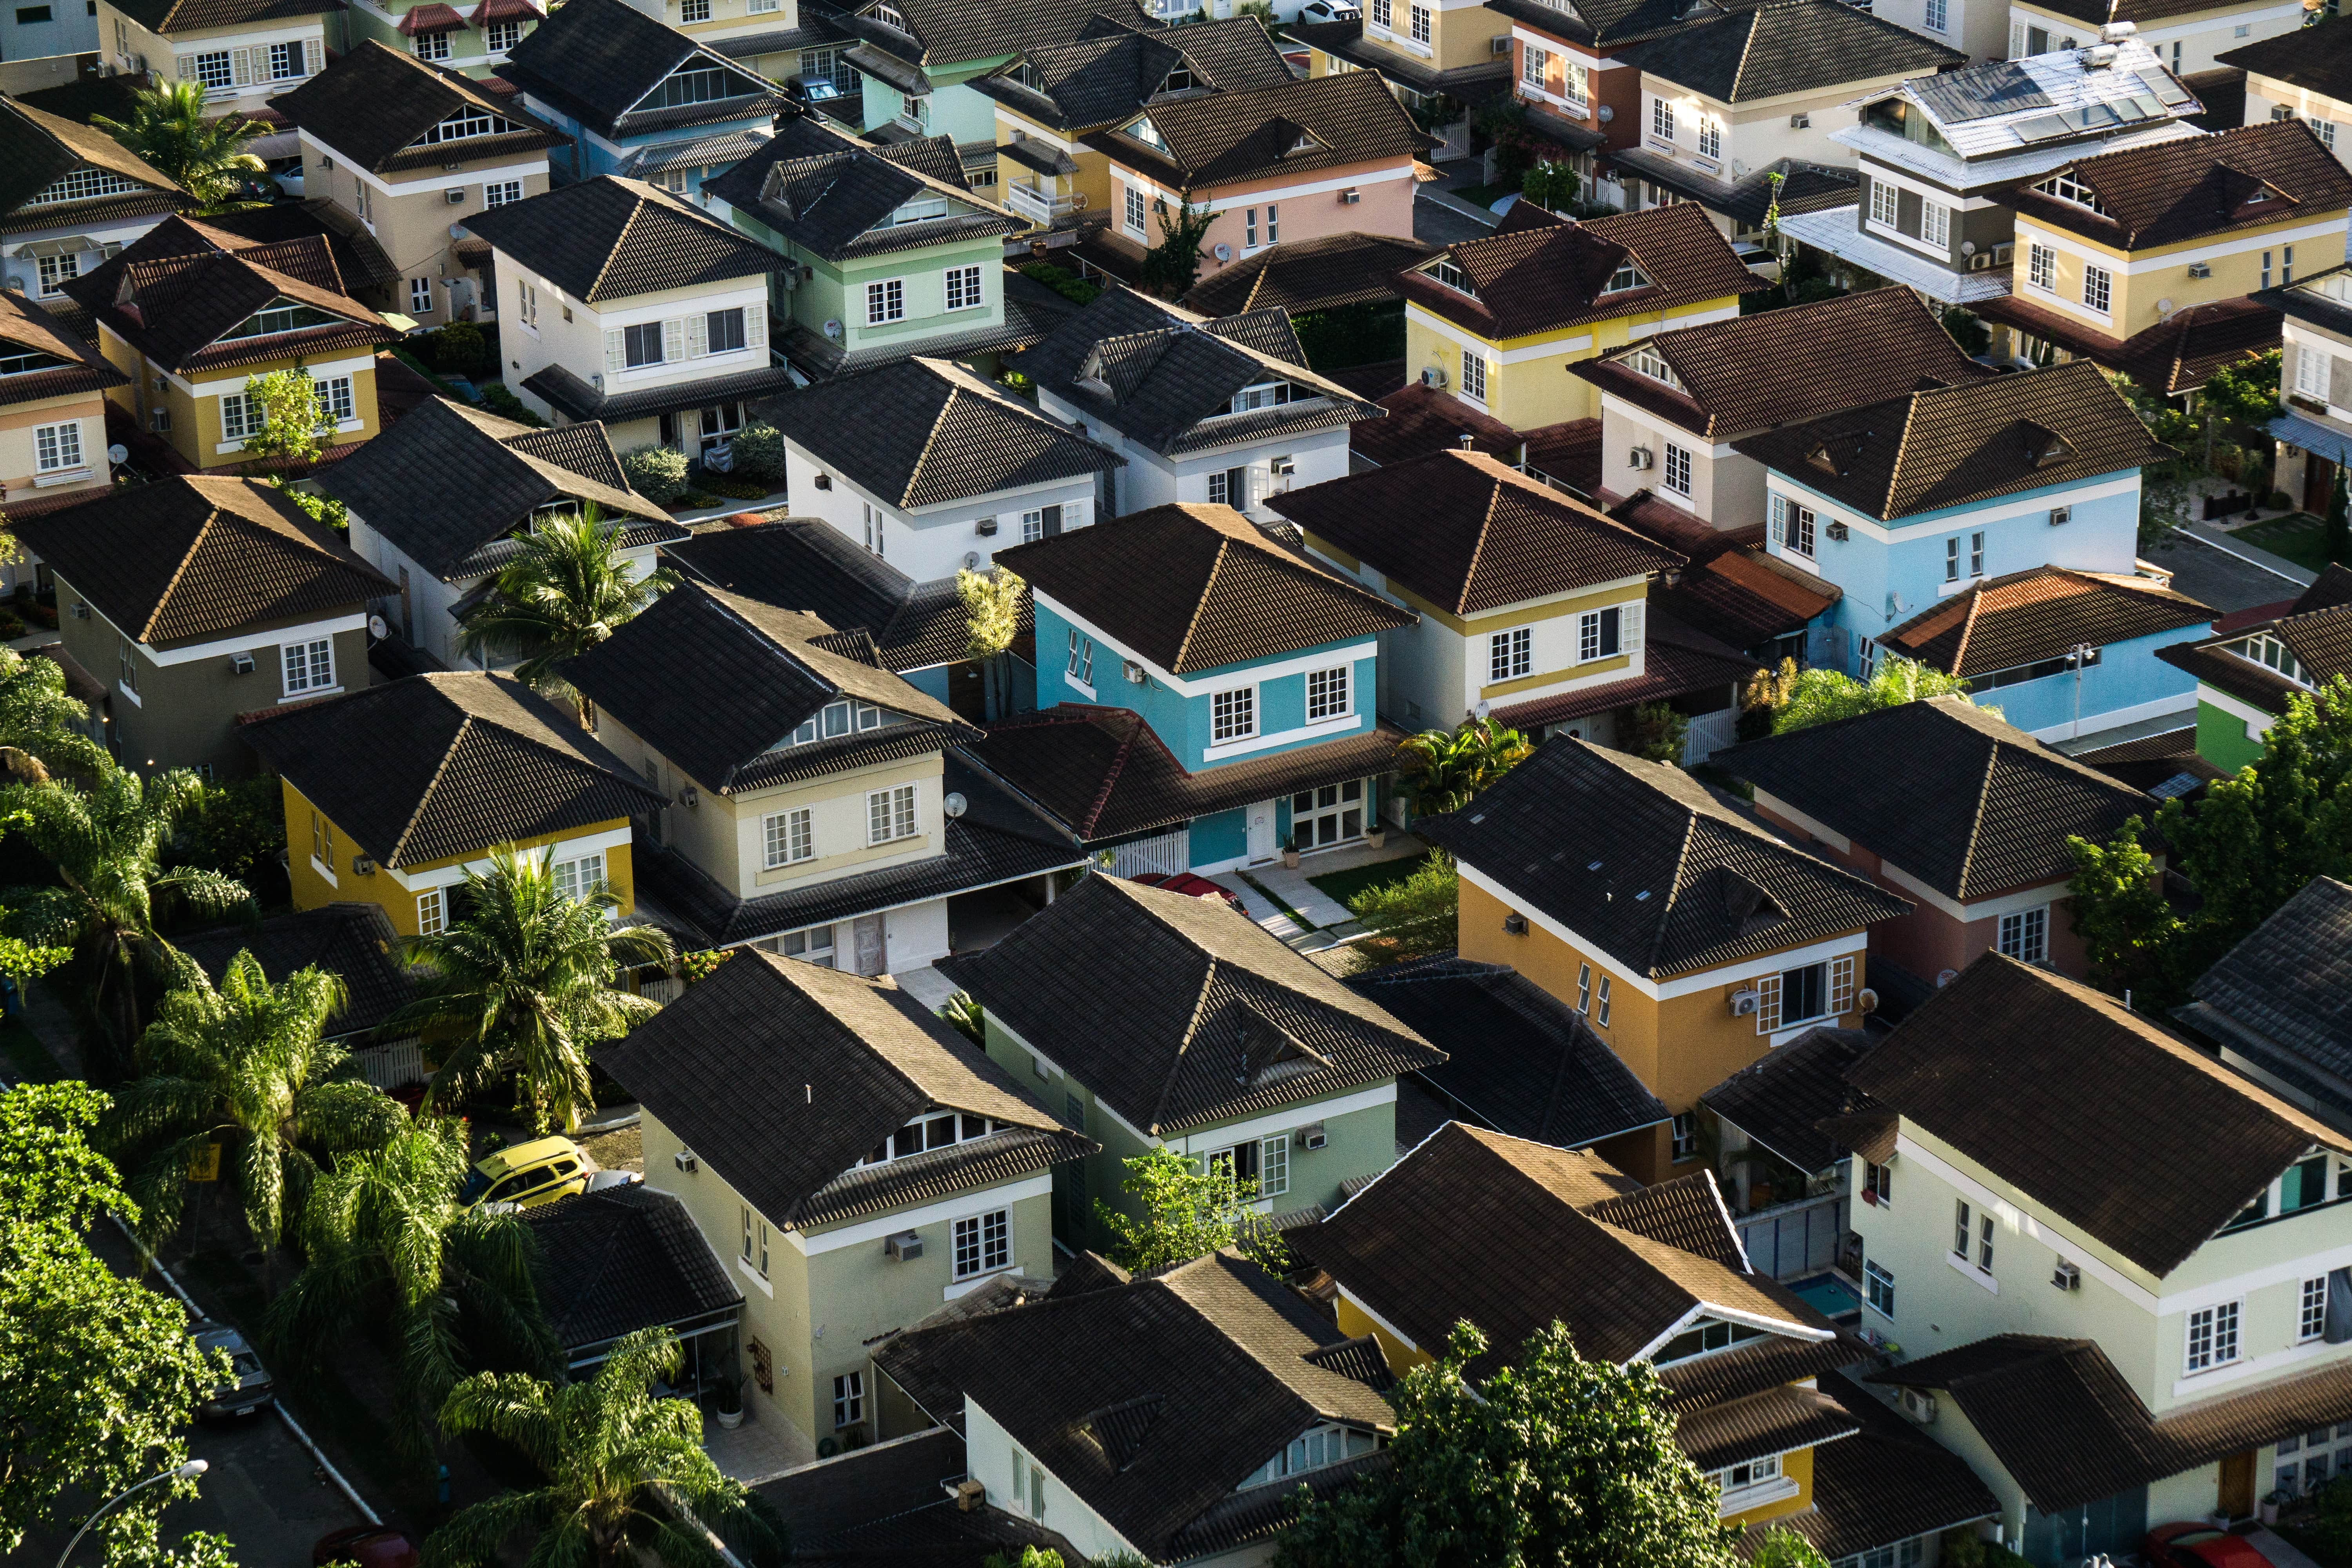 Historical Mortgage Rates and How they Affect the Housing Market